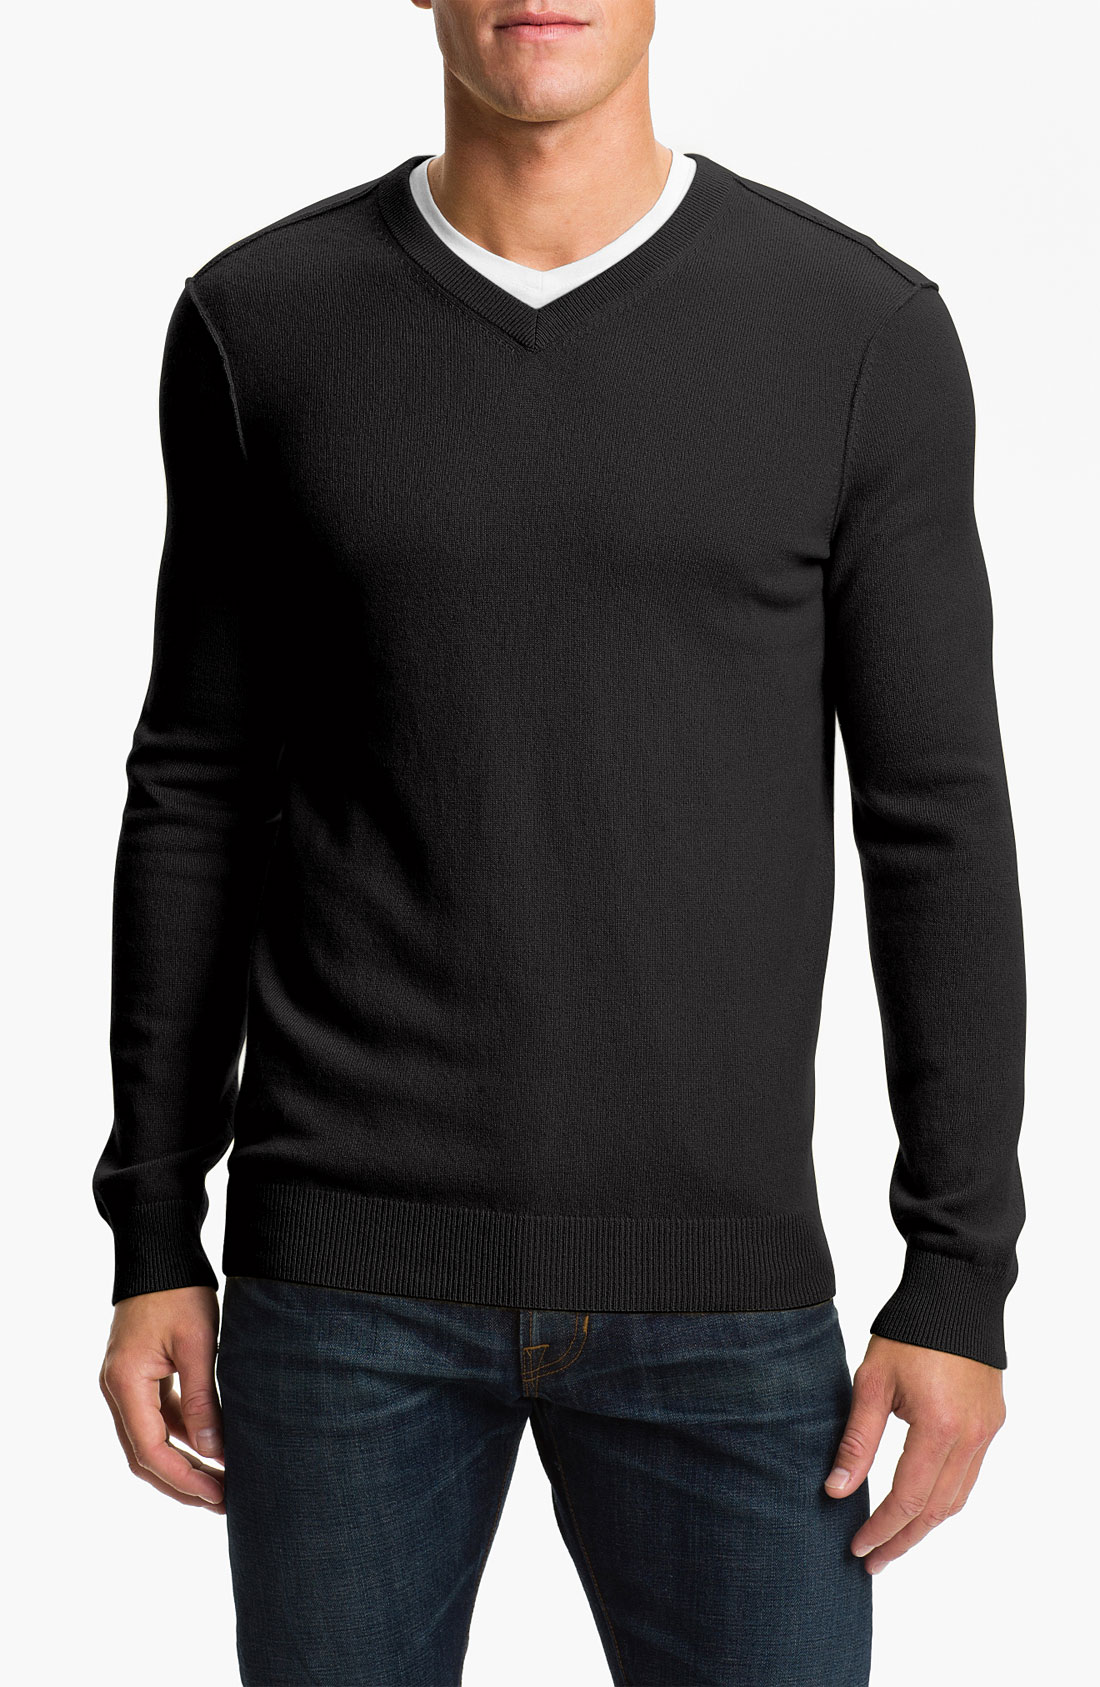 Shop Men's Sweaters at specialtysports.ga Browse men's crew neck sweaters, cashmere sweaters, cardigans & more. Find the perfect men's sweater for any occasion here.